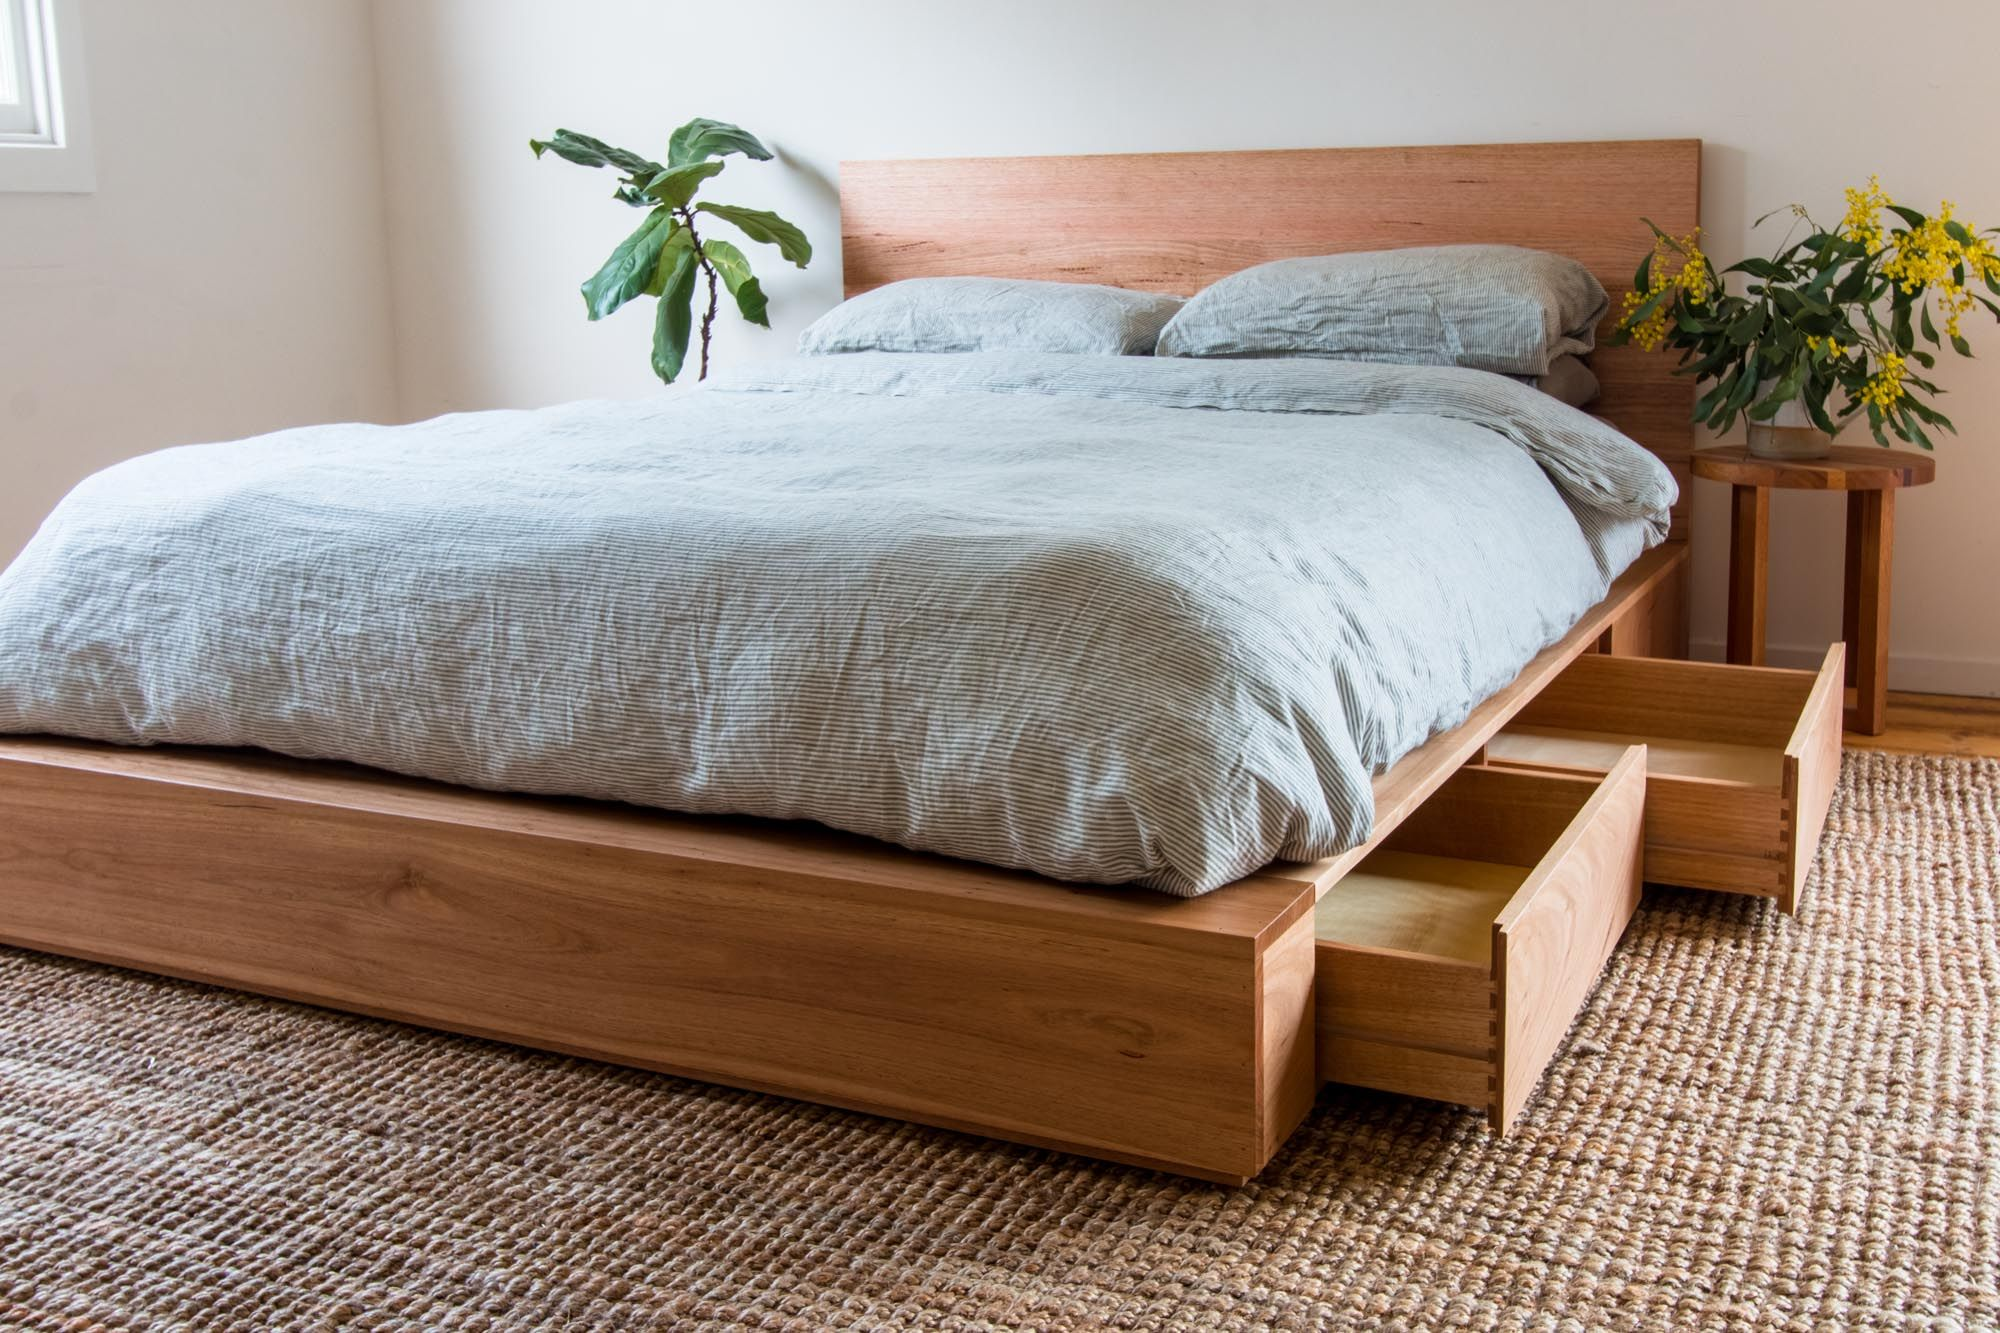 Al and Imo Handmade Recycled Timber Platform Bed with